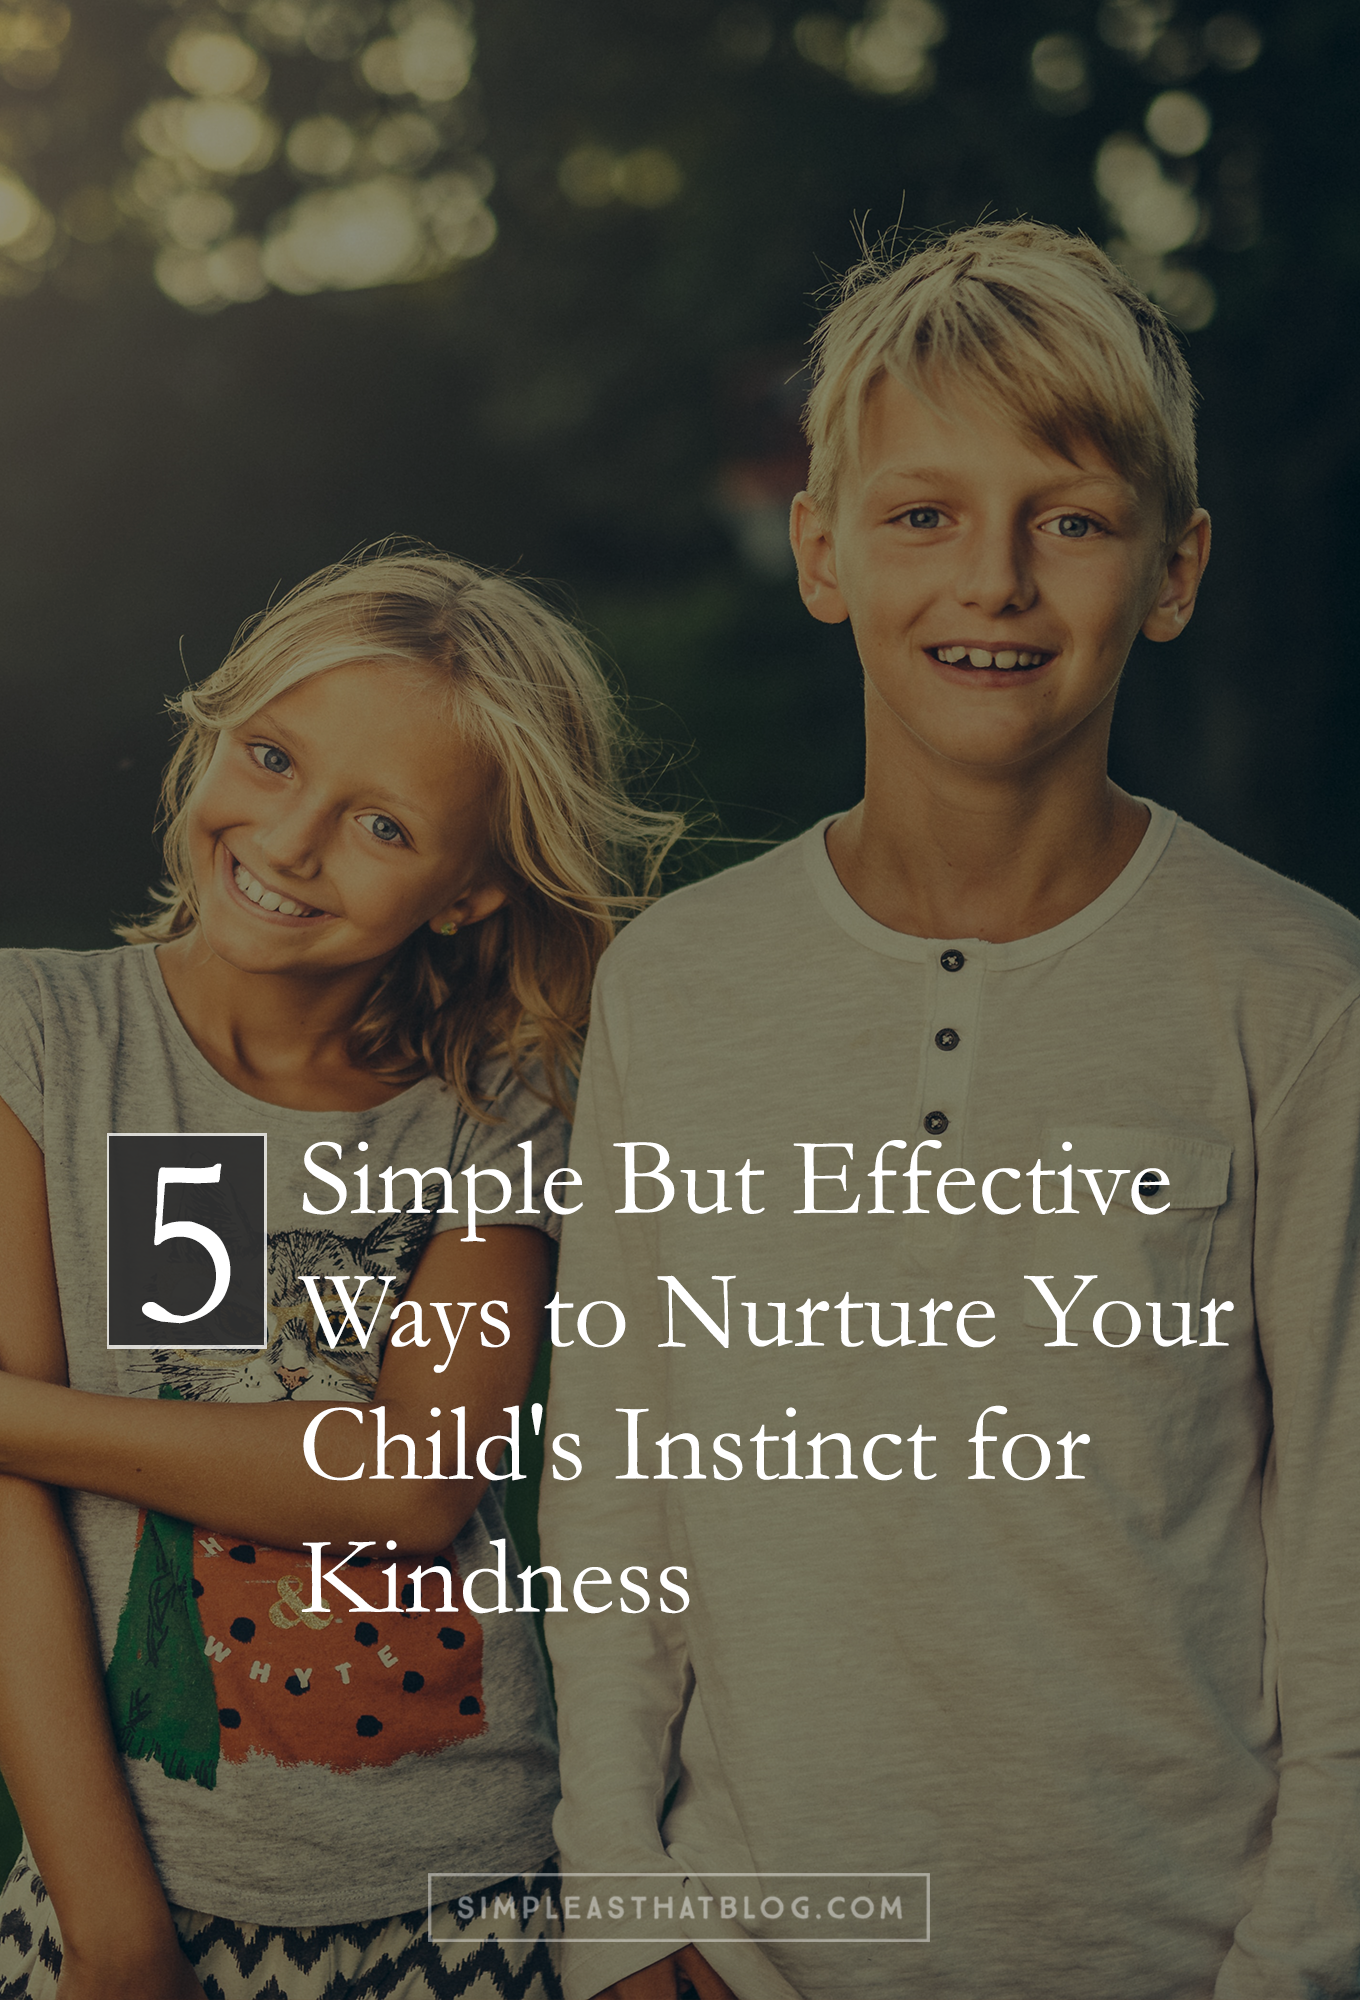 5 ways to nurture your child's instinct for kindness